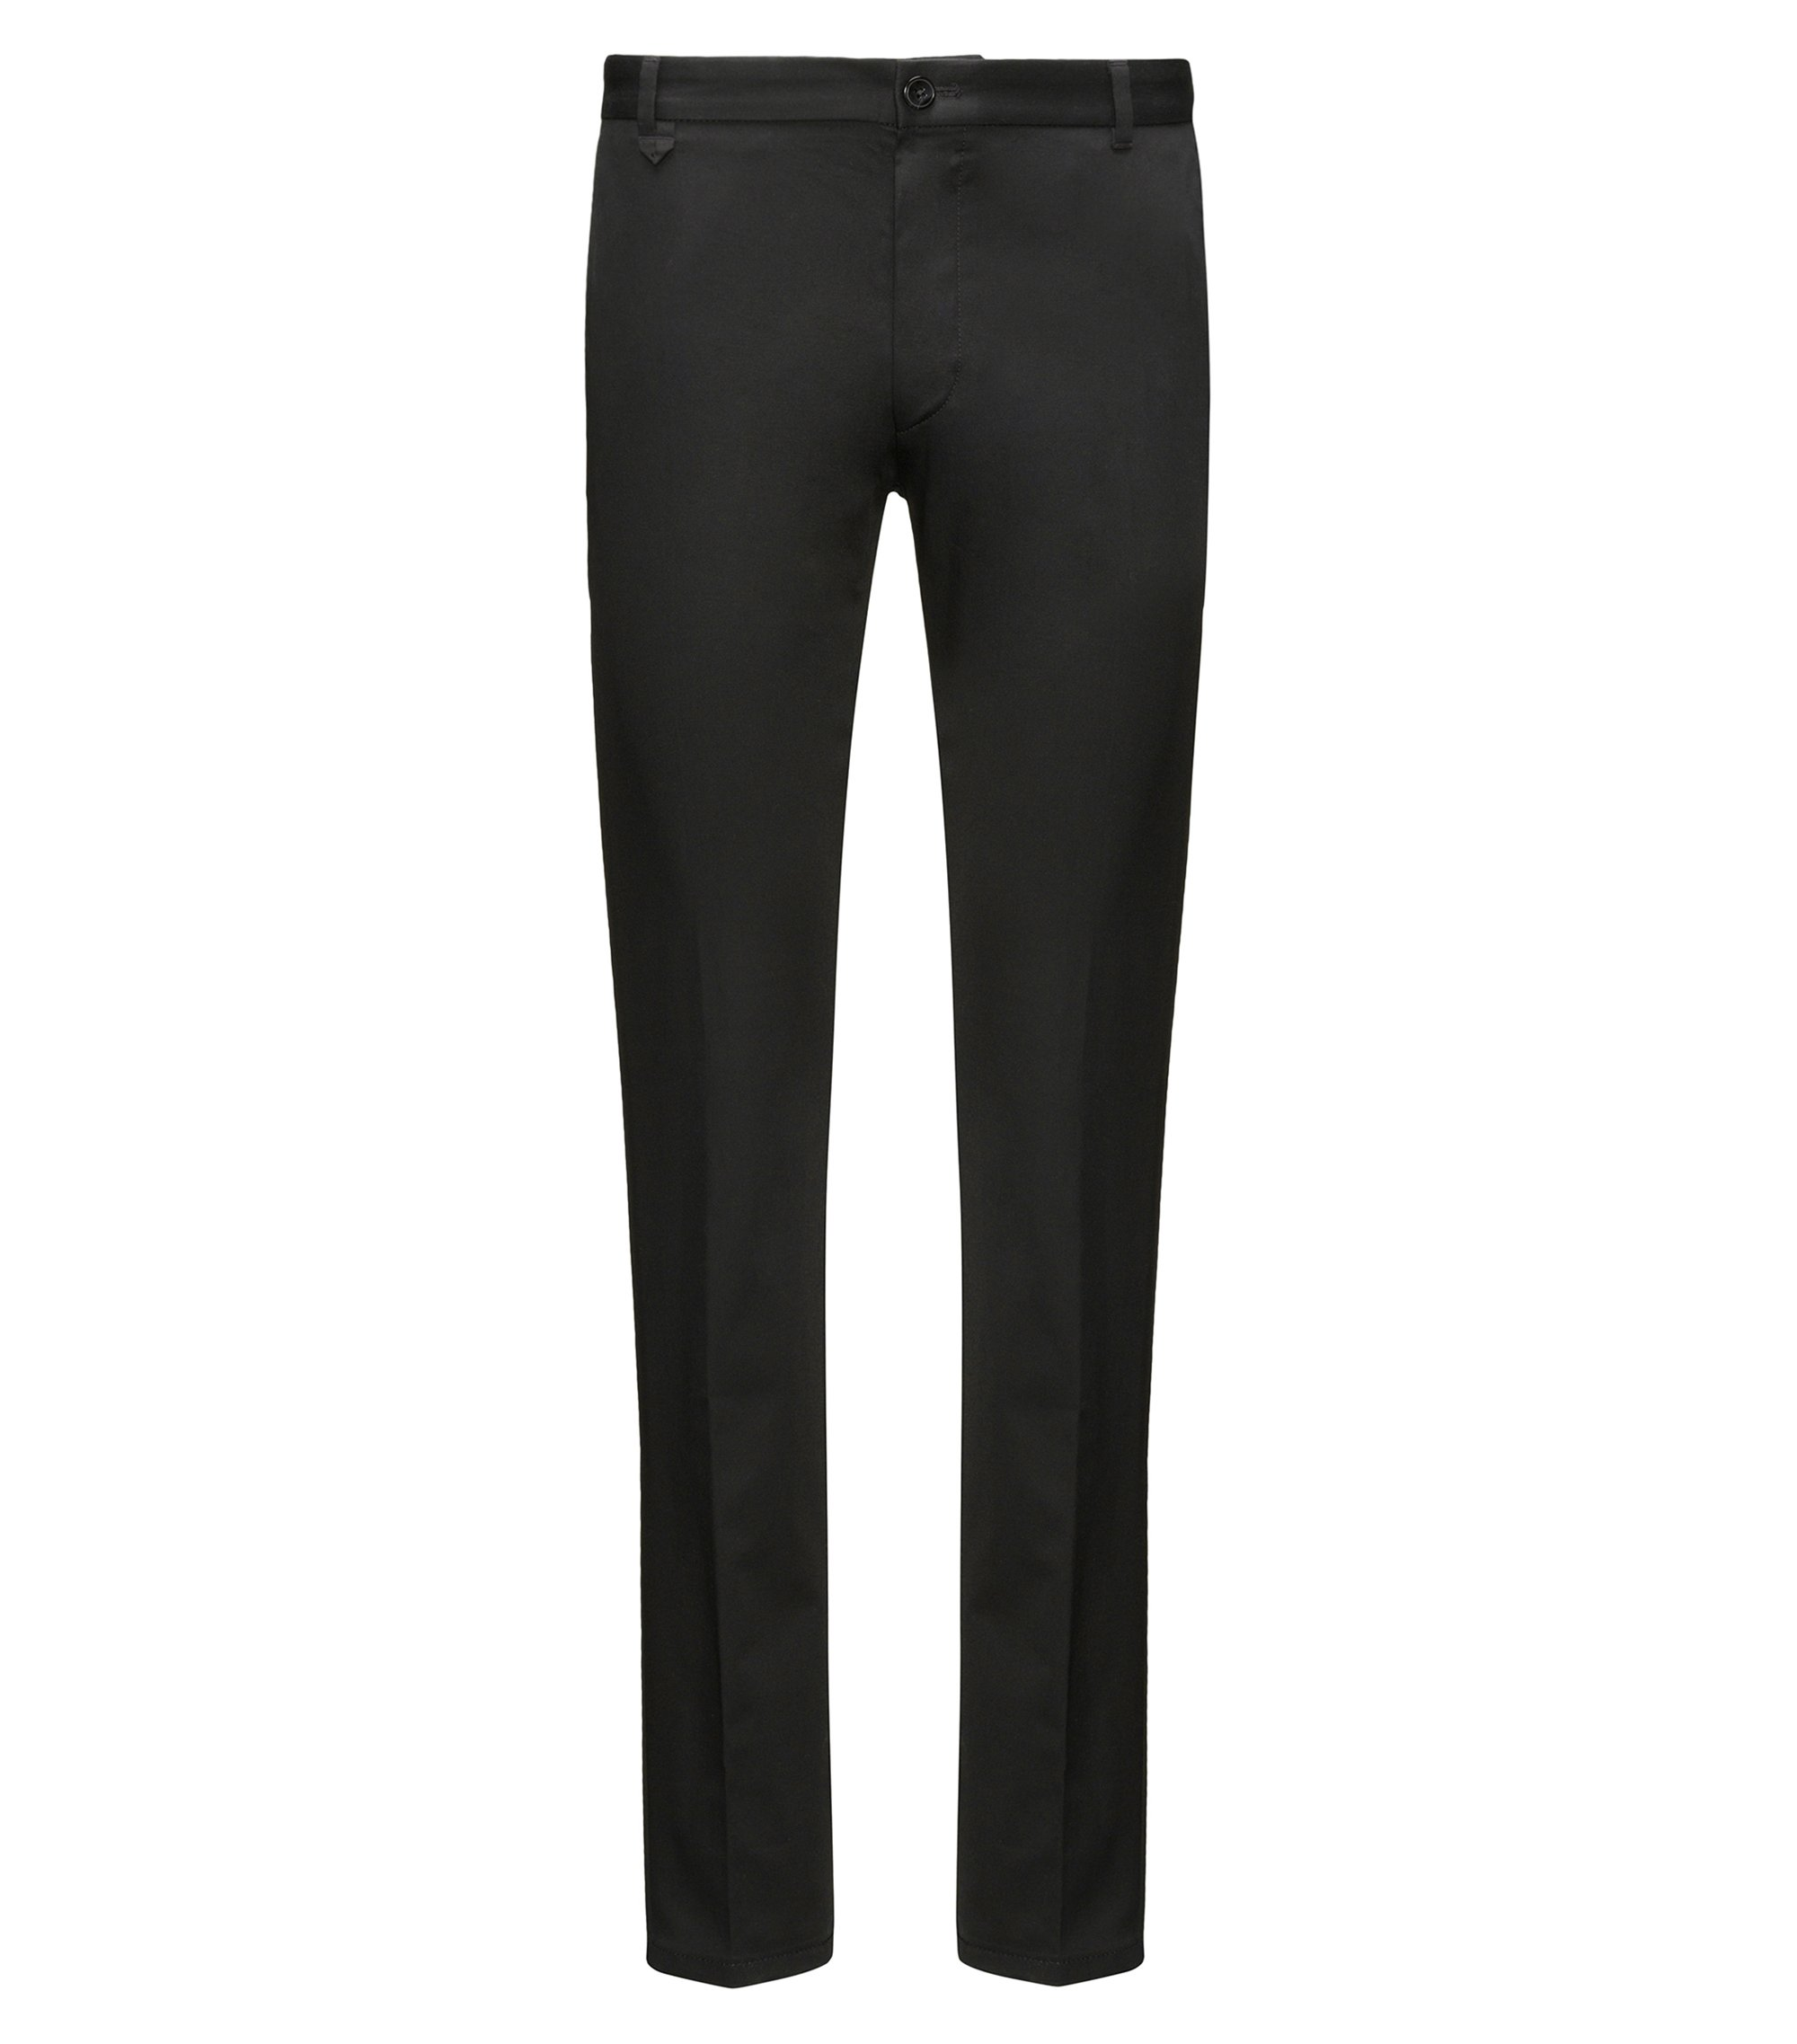 Pantalon Extra Slim Fit en coton stretch, Noir